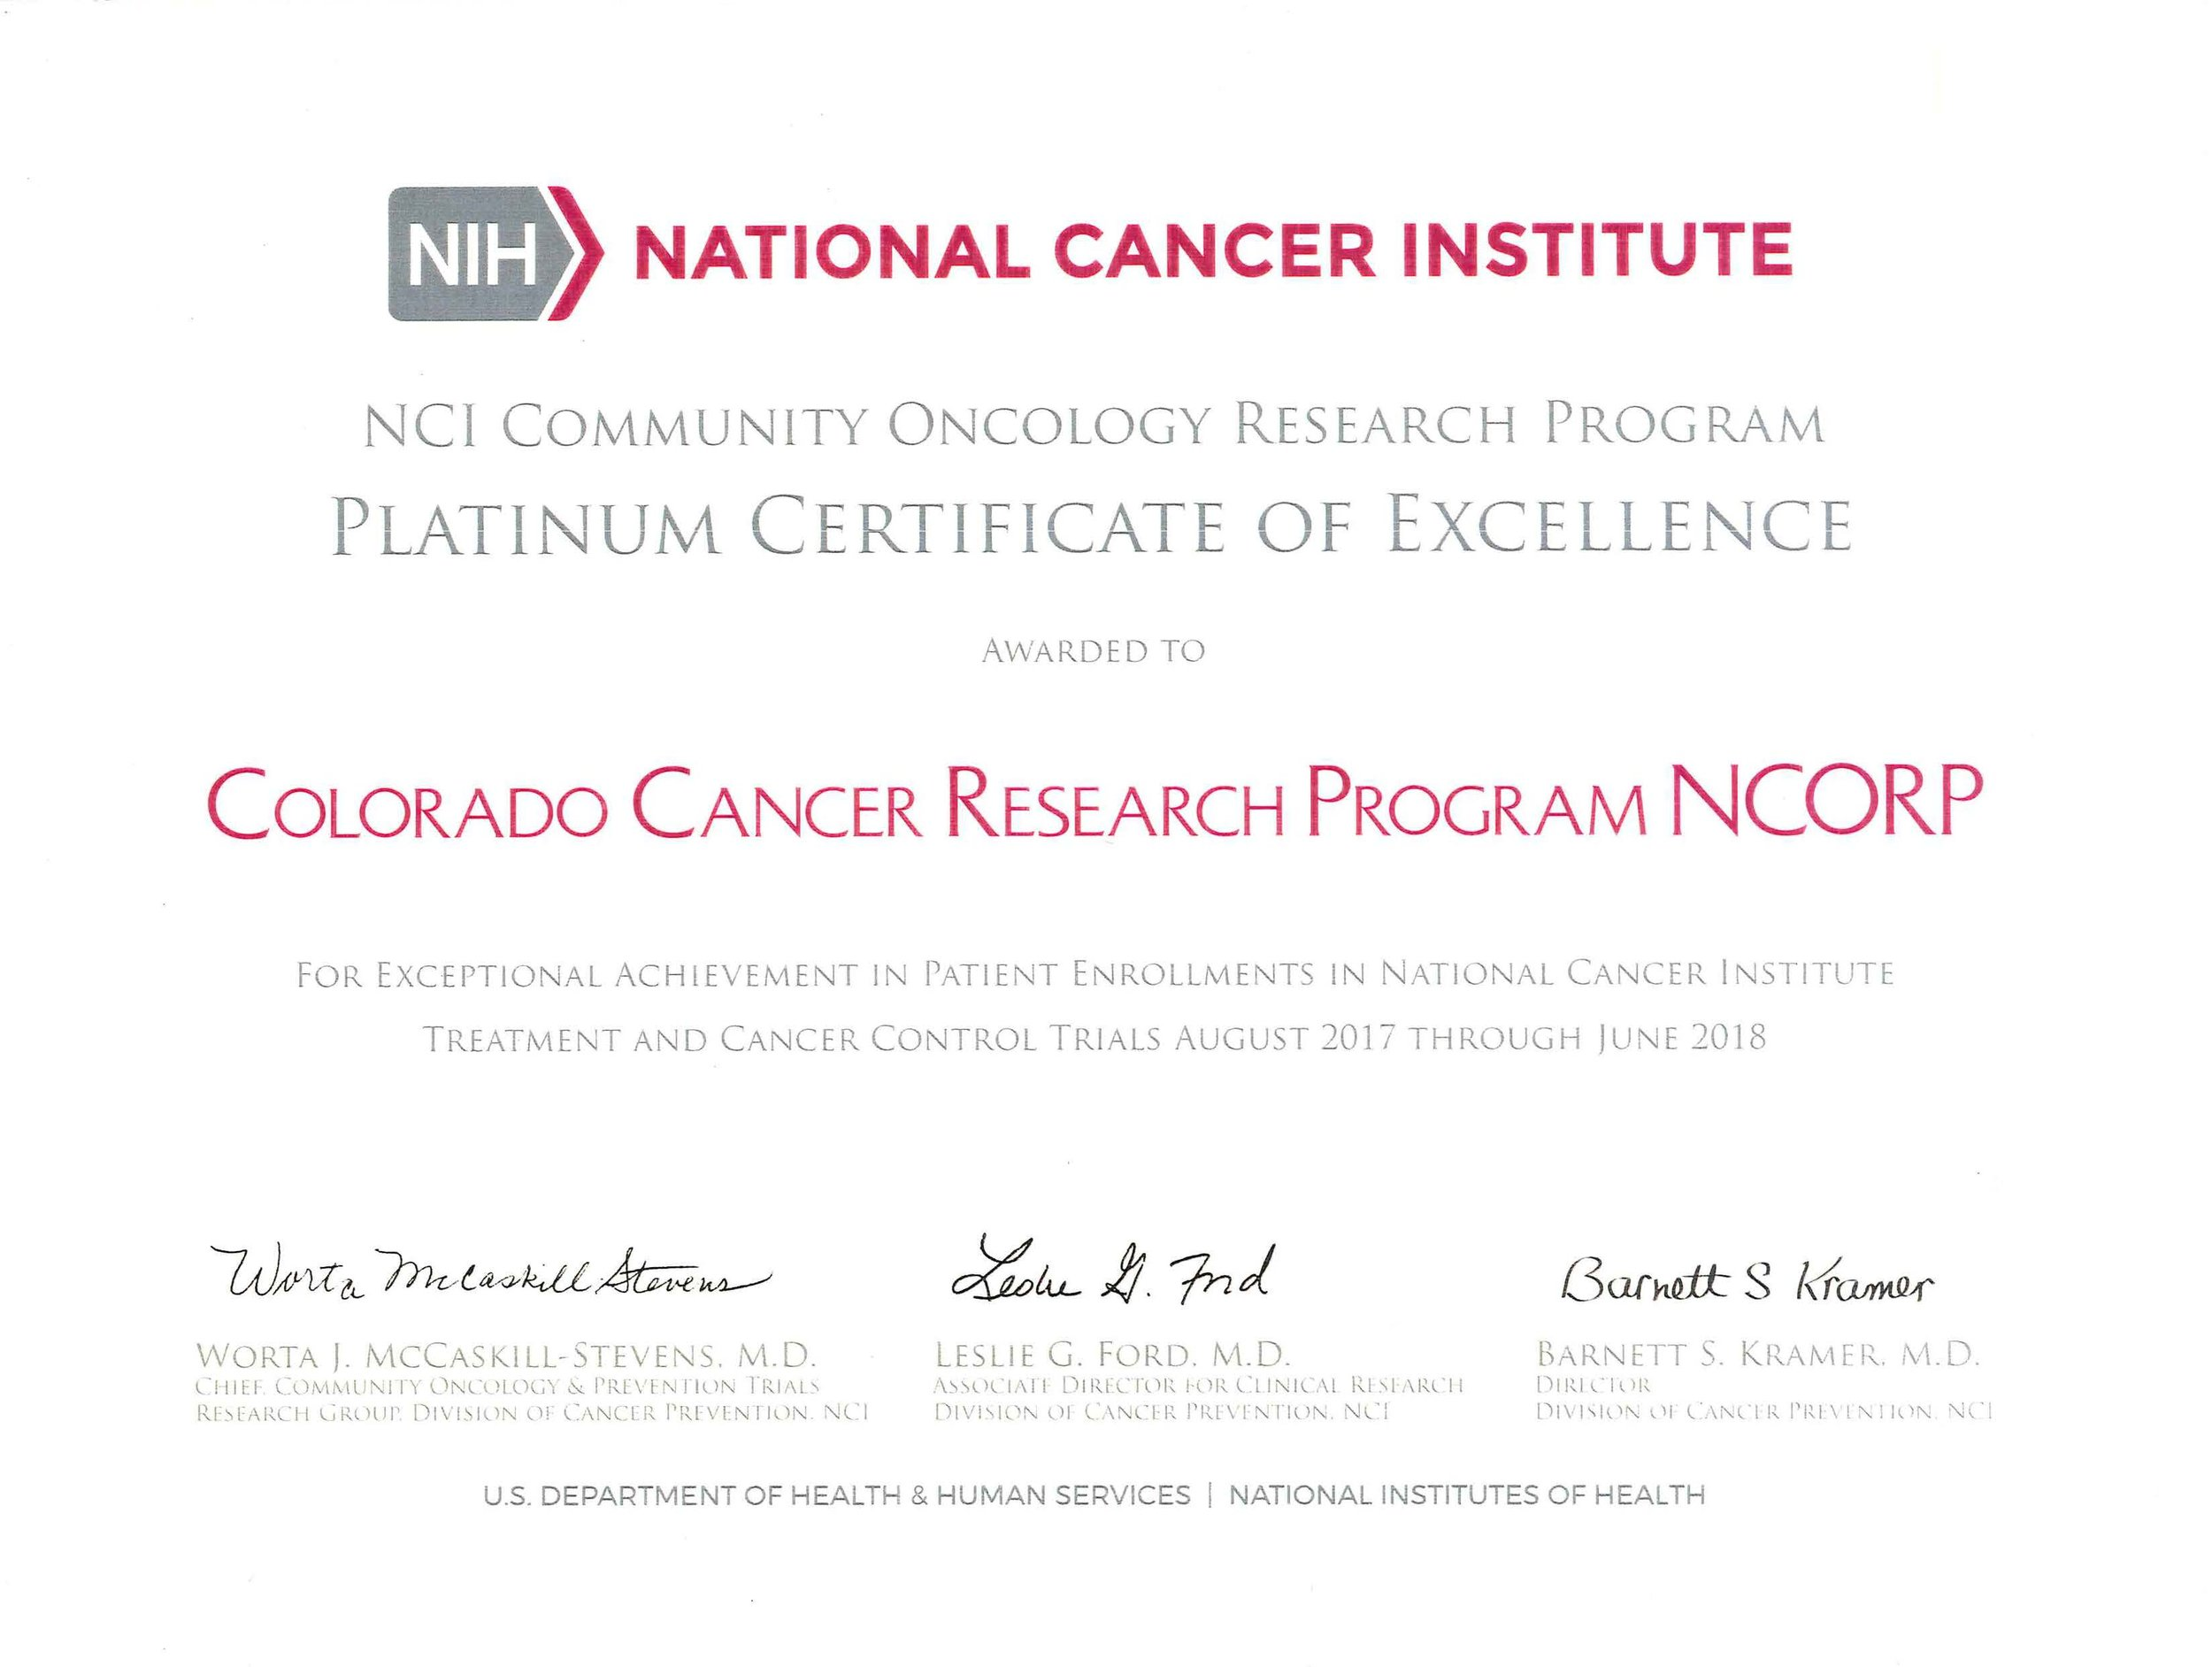 2018 NCORP Award Winner - At the September annual NCORP meeting in Bethesda, MD several NCORPs were nationally recognized for exemplary accruals to cancer control and treatment trials this past year. Colorado Cancer Research Program was honored to receive the Platinum Certification of Excellence.Click HERE to see all the Award Winners